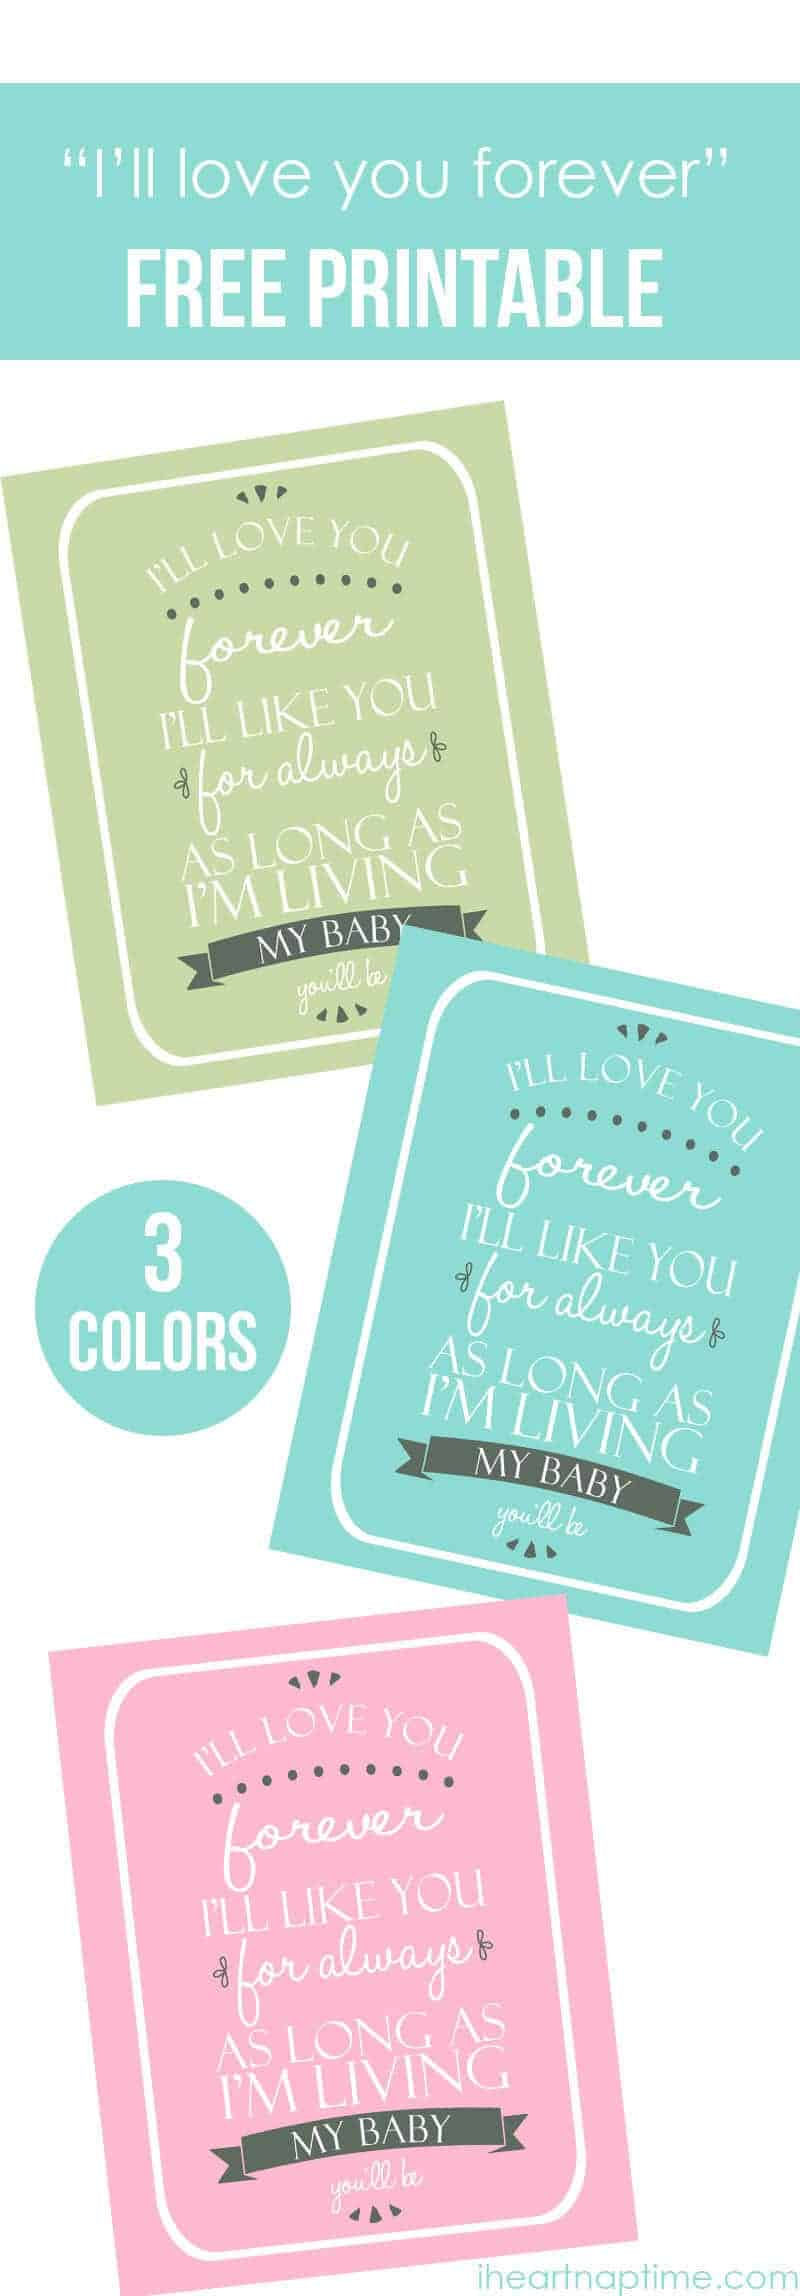 I'll love you forever free printable I Heart Nap Time